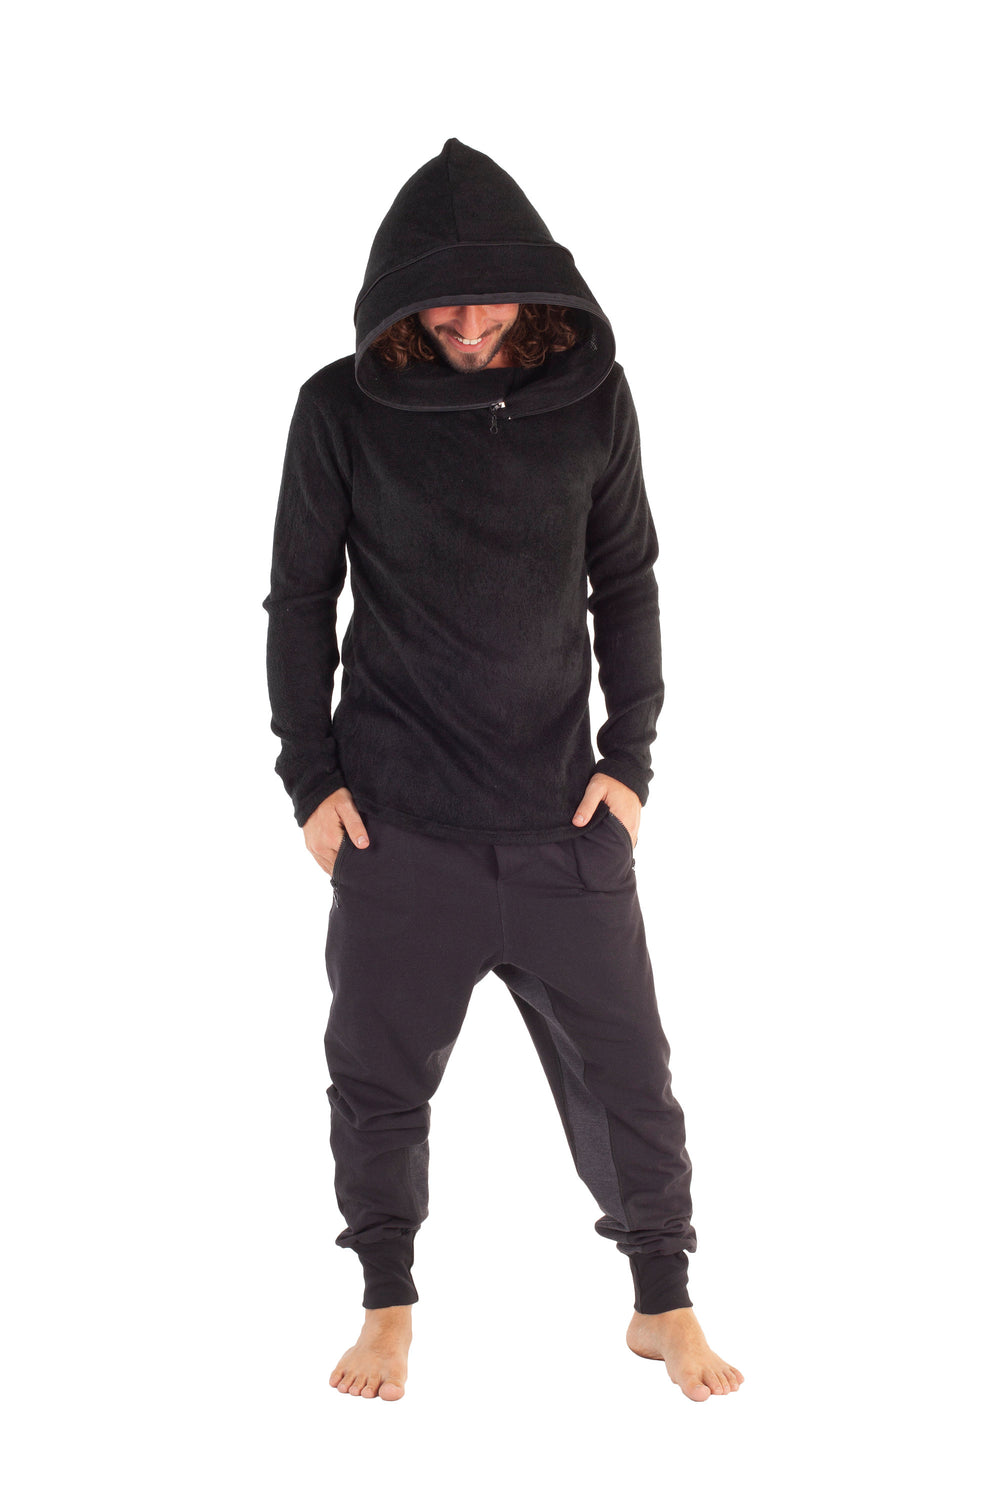 Kinao Hooded Shirt Expandable Large Hood Top, Black Hoodie Urban Street Festival Gothic Rave Alternative Primitive Long Sleeve AJJAYA